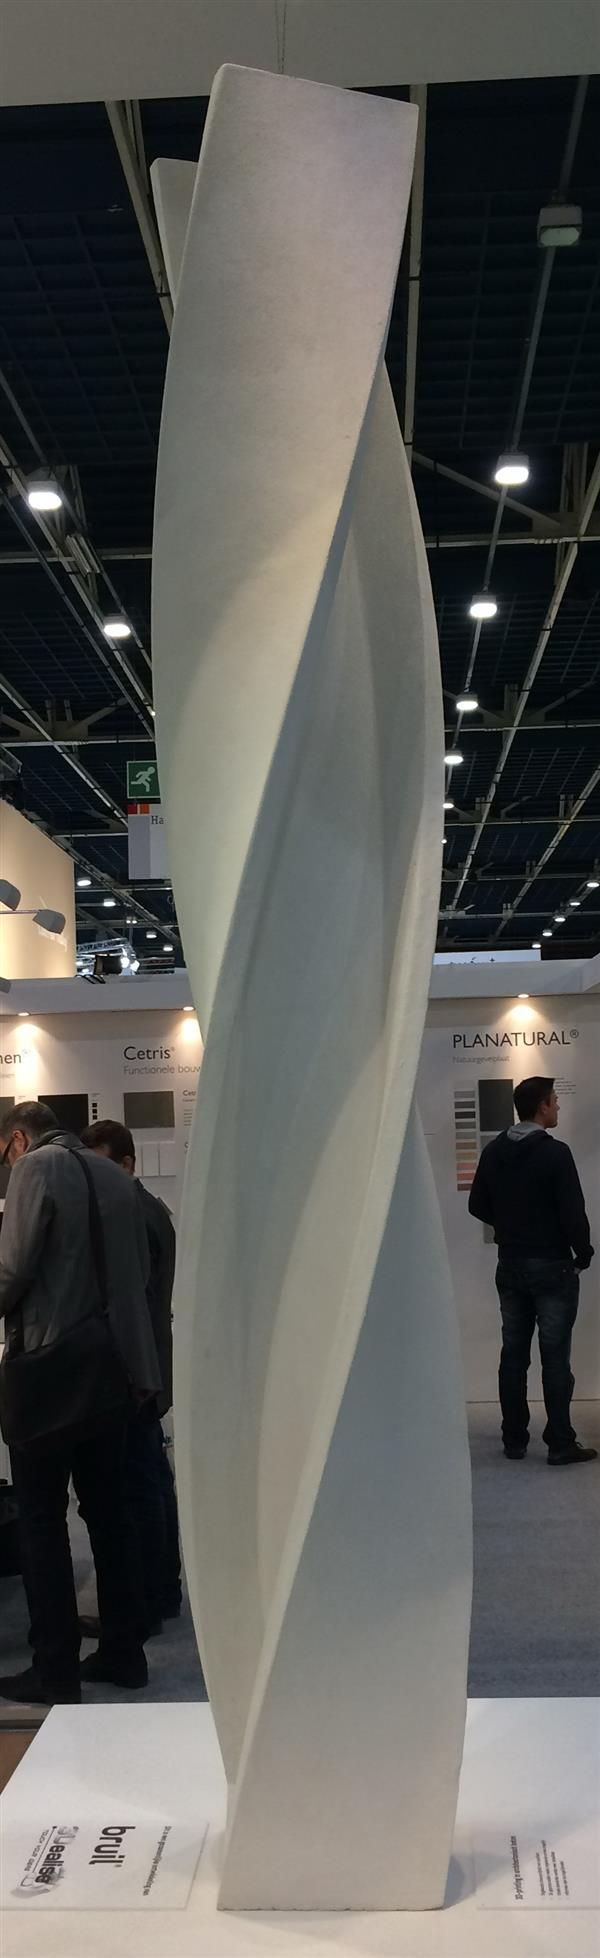 3Dealise, ExOne and Bruil introduce new technology for freeform 3D-printed architectural concrete